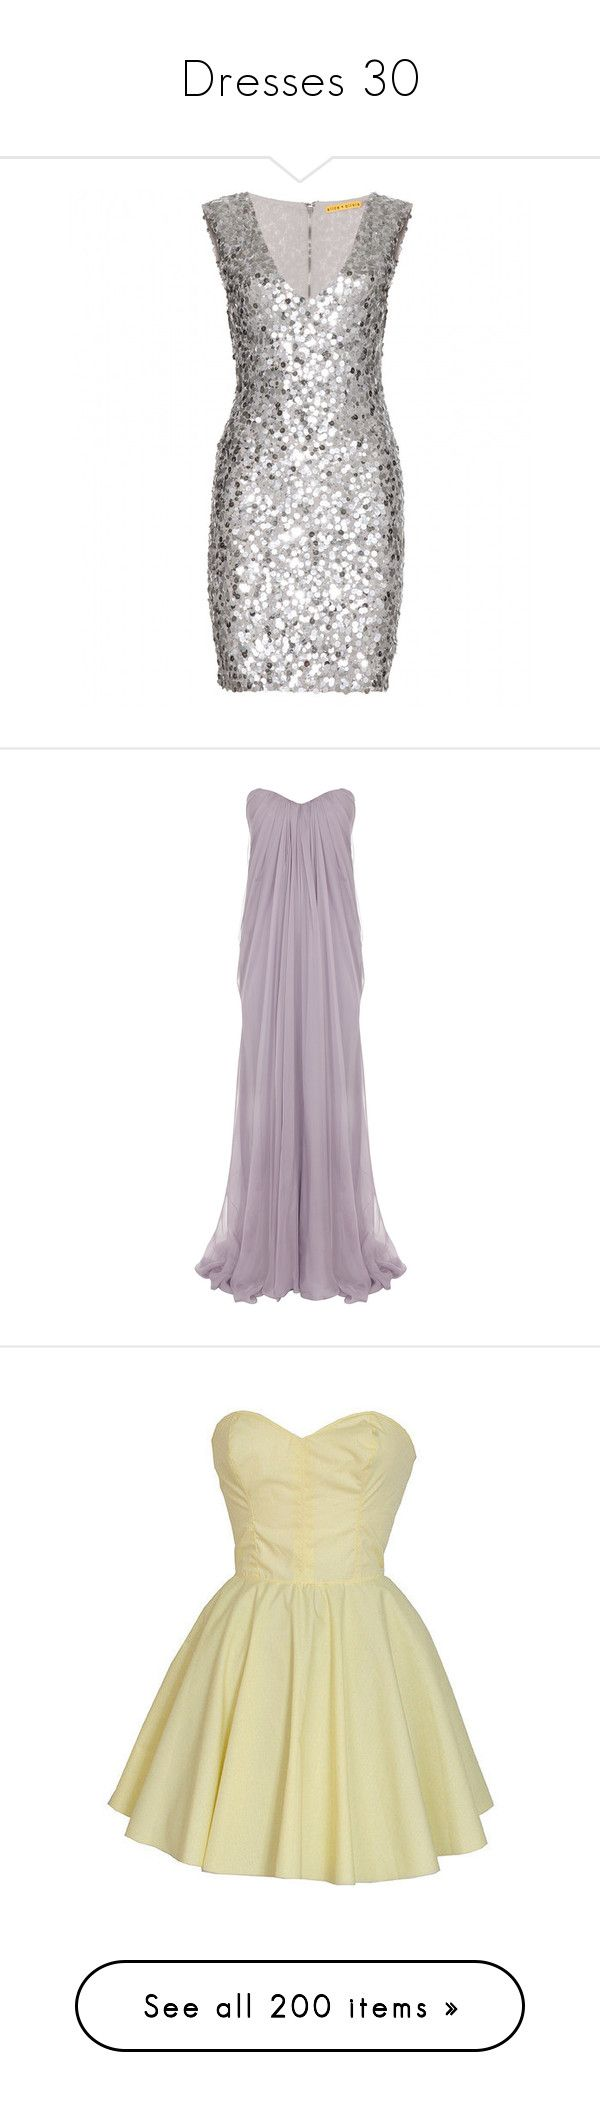 """""""Dresses 30"""" by summersurf2014 ❤ liked on Polyvore featuring dresses, vestidos, short dresses, cocktail dresses, metallic, metallic dress, short sequin dress, sequin mini dress, silver mini dress and mini dress"""